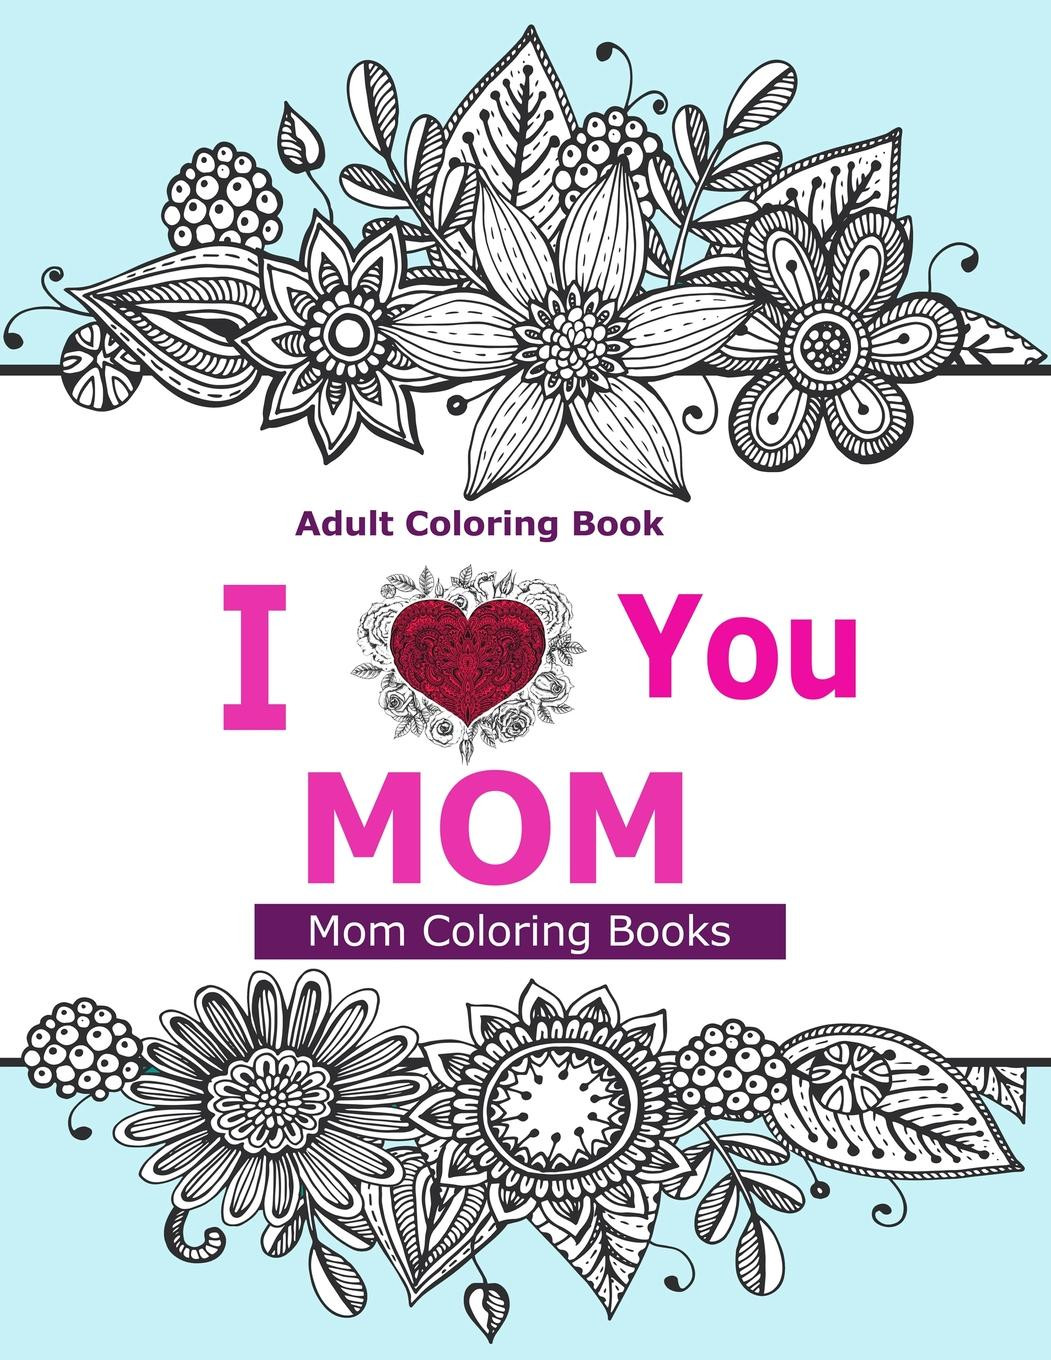 Adult Coloring Books Walmart  Adult Coloring Books I Love You Mom A Coloring Book for